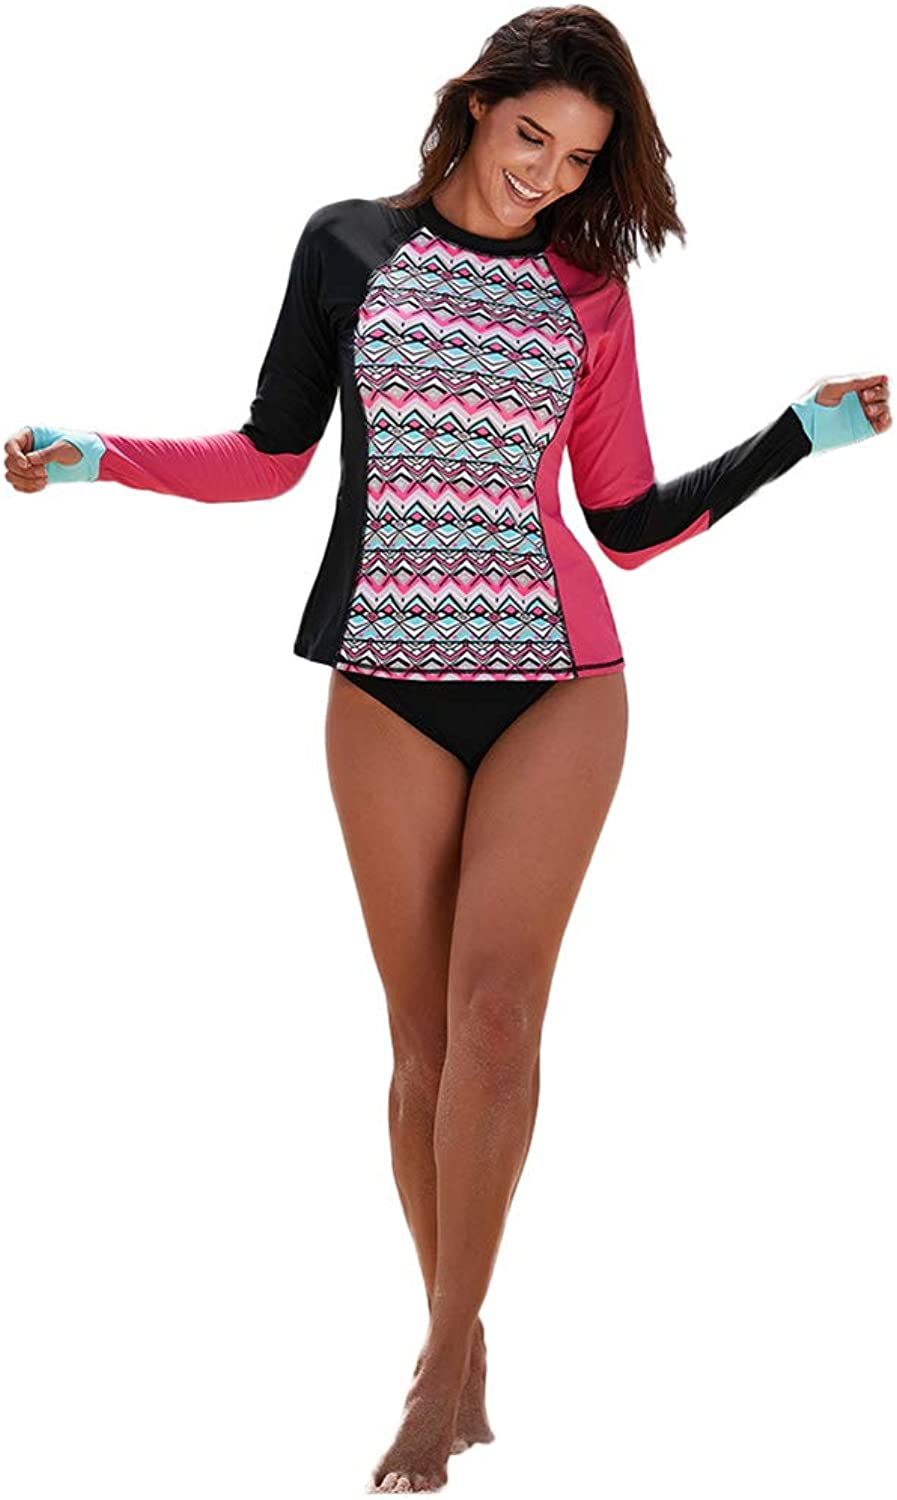 Long Sleeves Wetsuit Printed Patterns UV Predection Sport Dive Skin Suit  Perfect for Swimming Scuba Diving Snorkeling Surfing  Two Pieces for Women&Teens